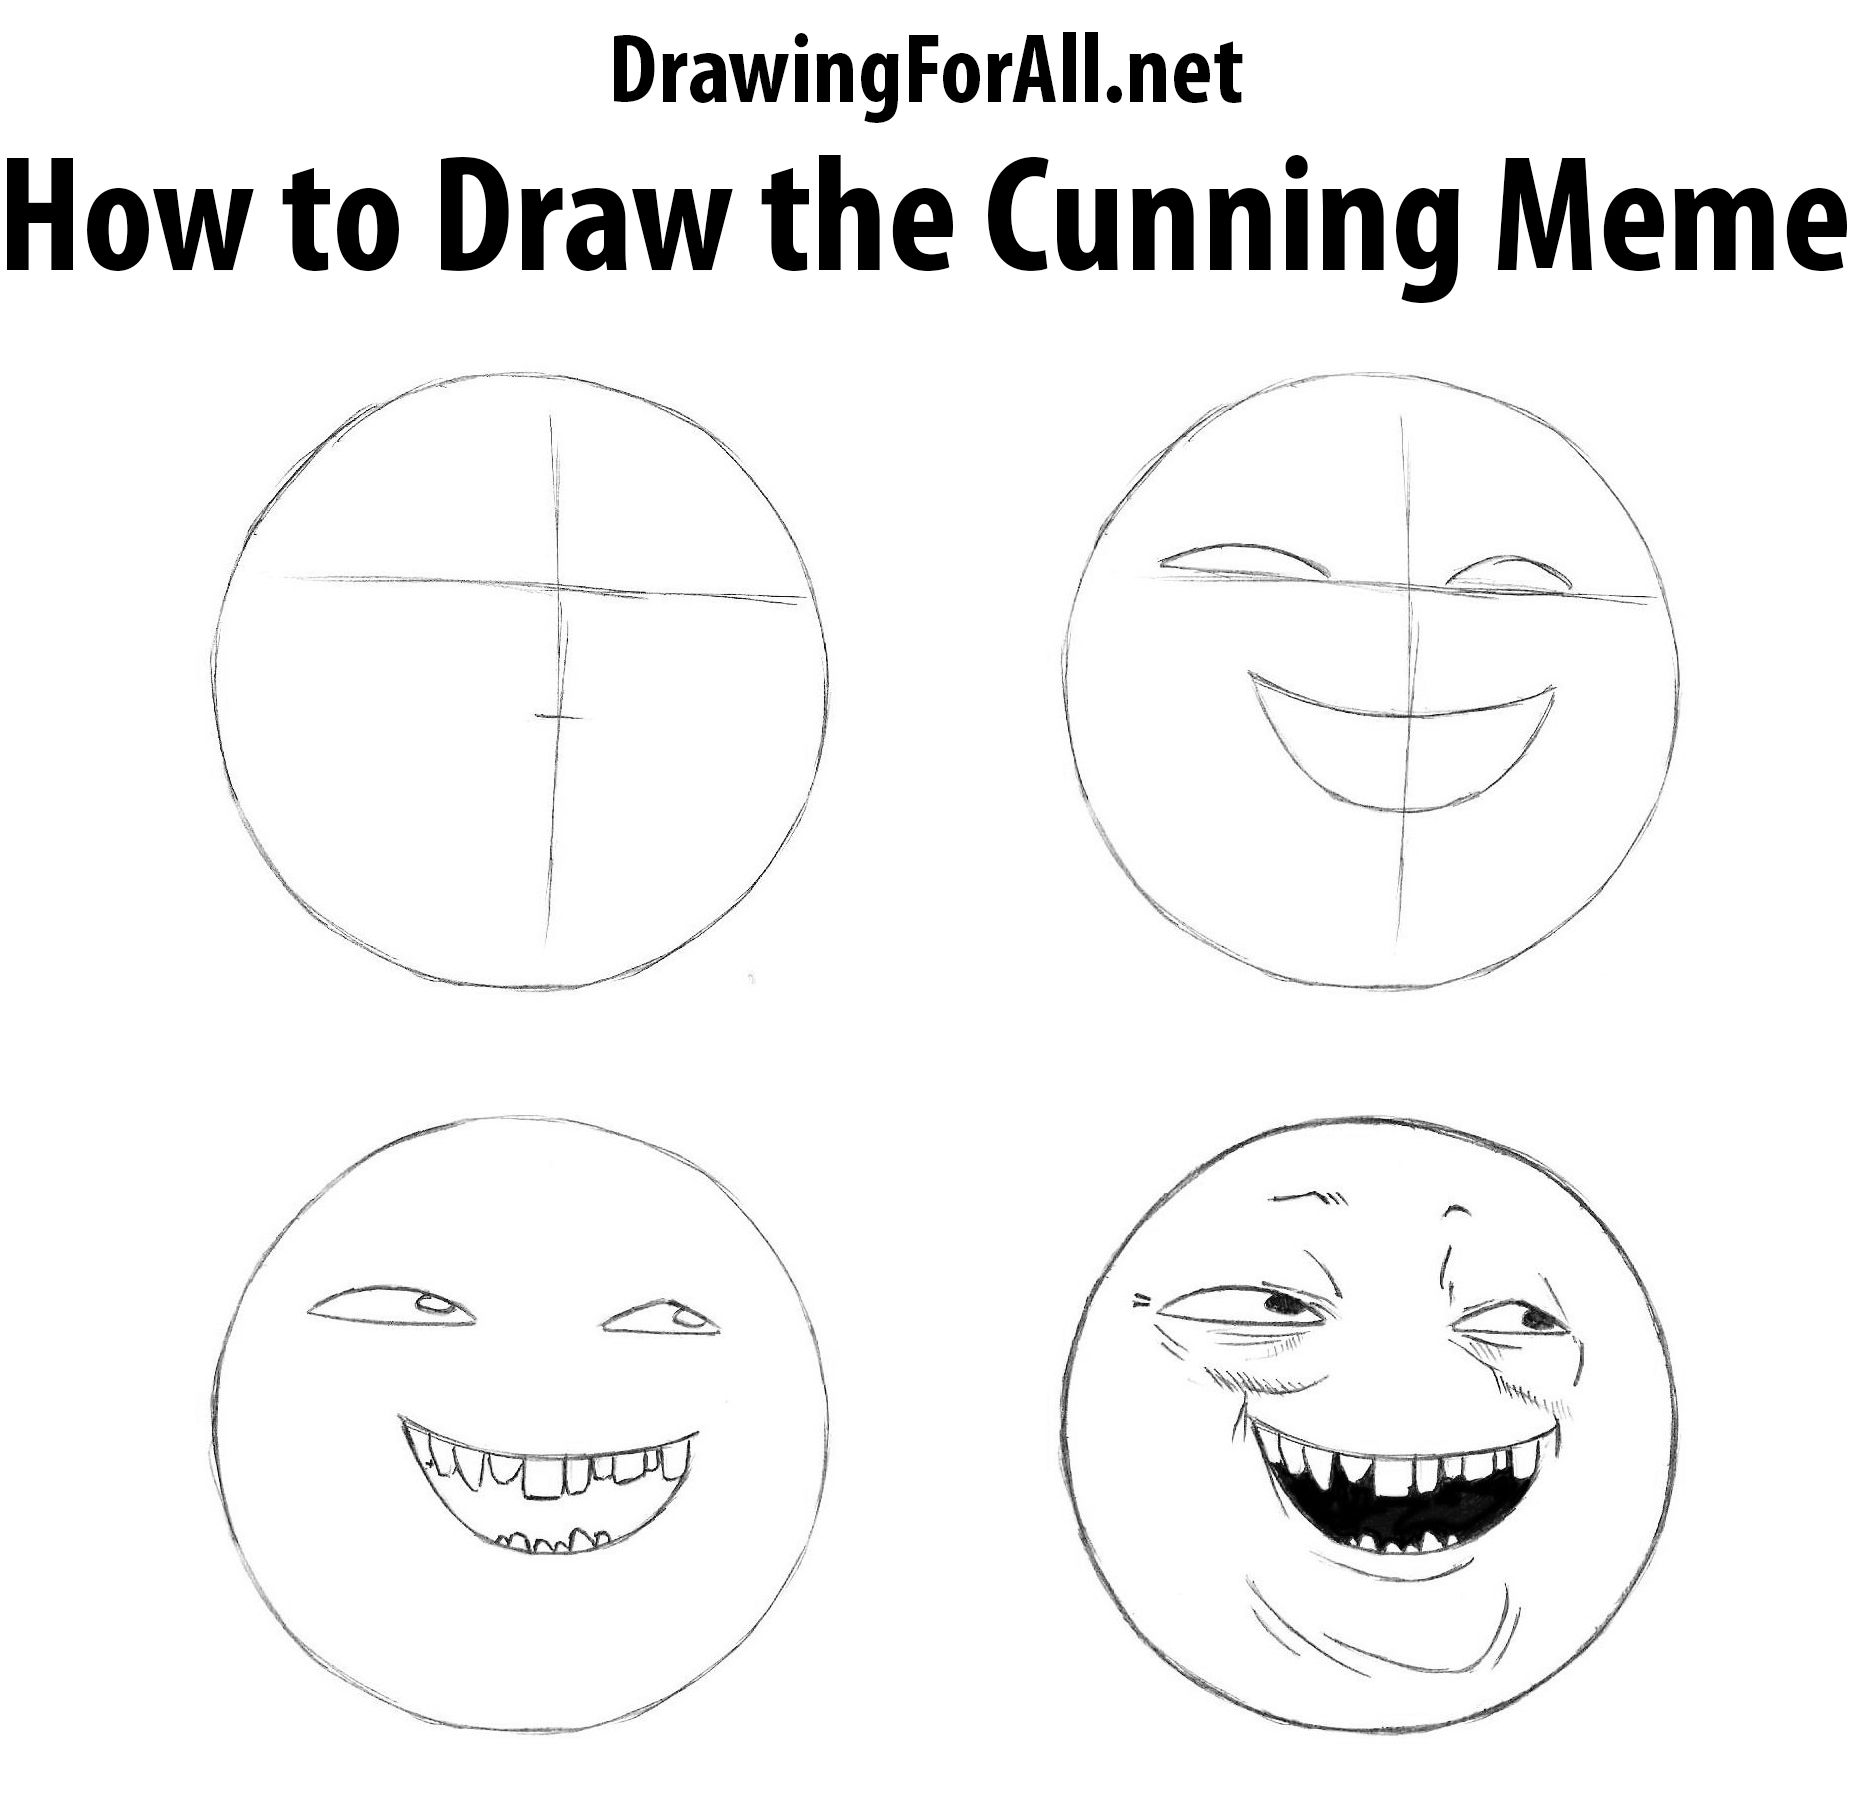 How To Draw The Cunning Meme Drawings Draw Memes